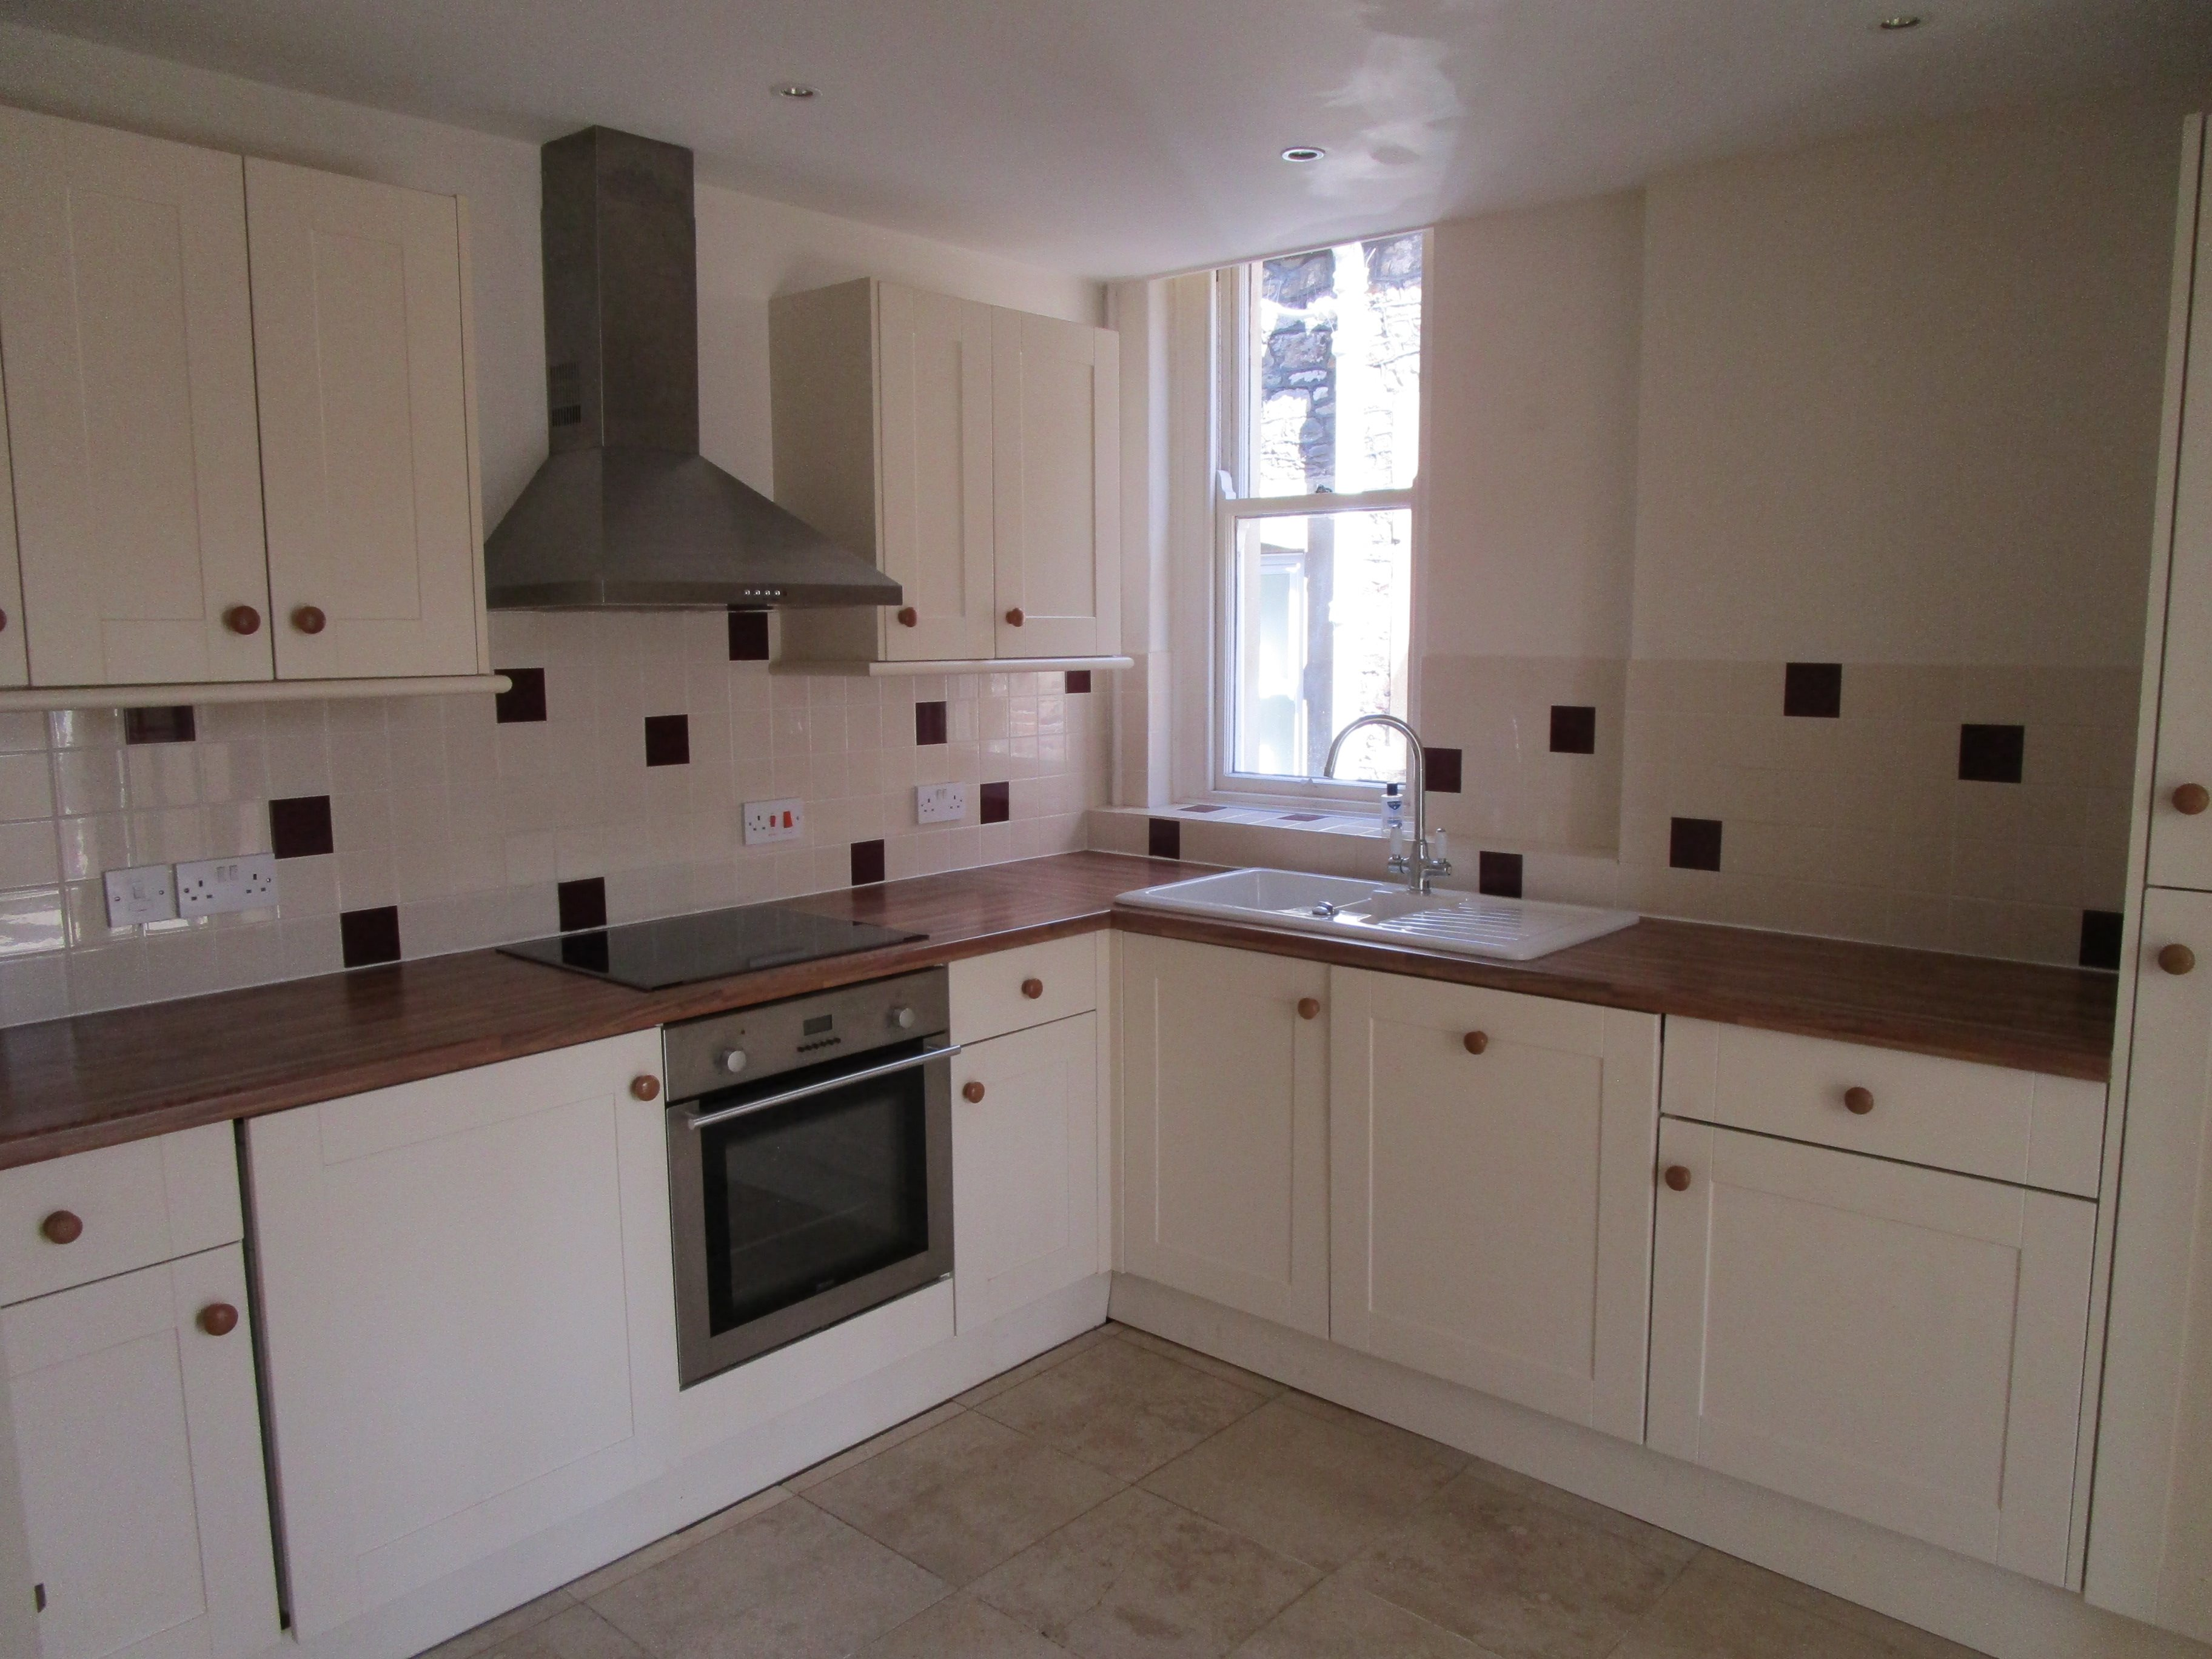 1 bed flat to rent in Blenheim Road, Redland, BS6